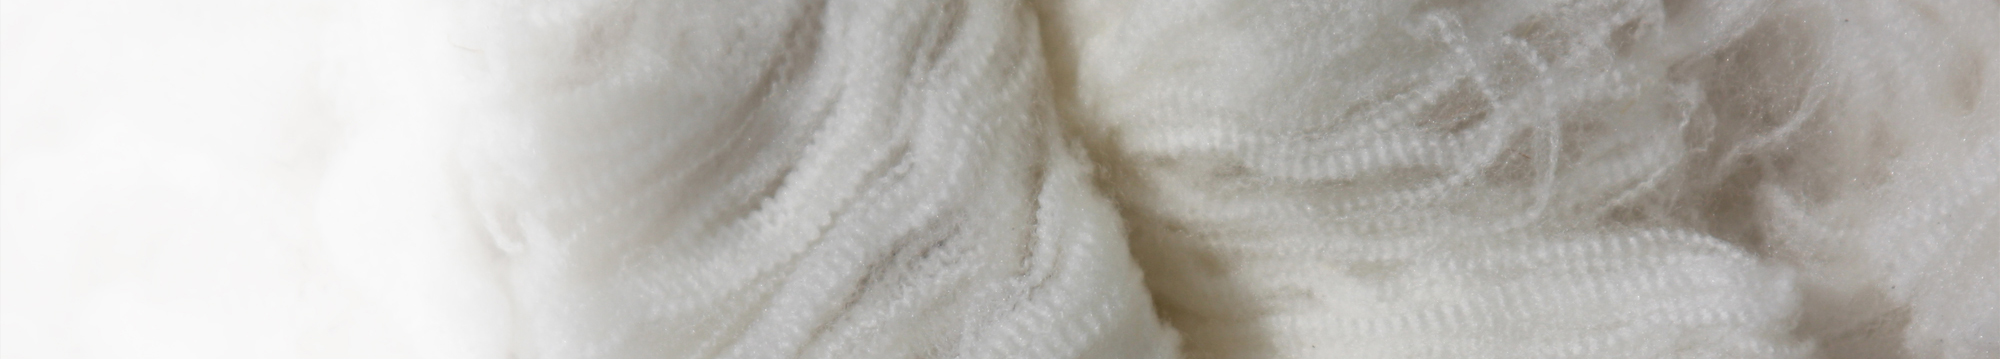 NEW-HEADER1_Wool.2000